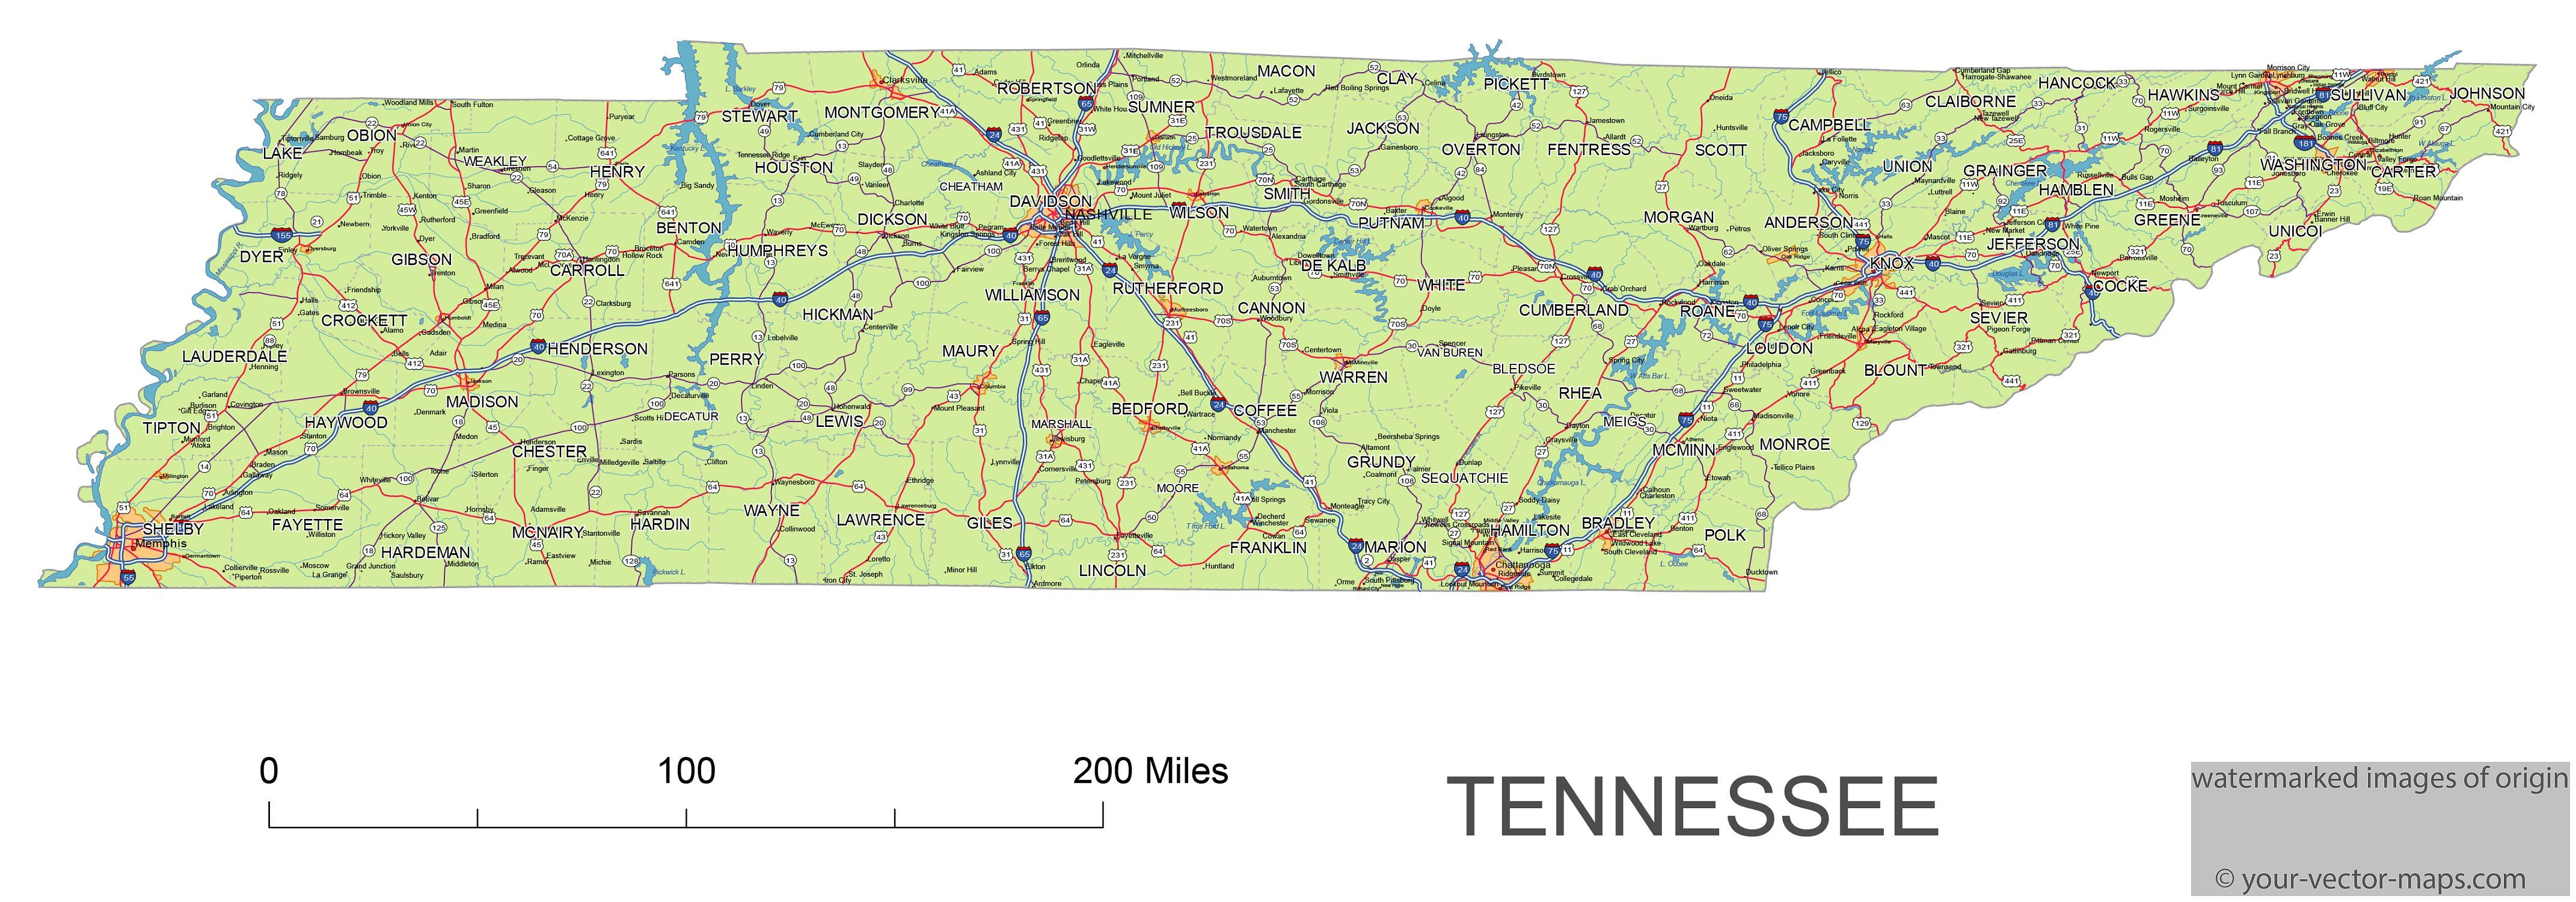 Tennessee State Route Network Map Tennessee Highways Map Cities - Us map tennessee